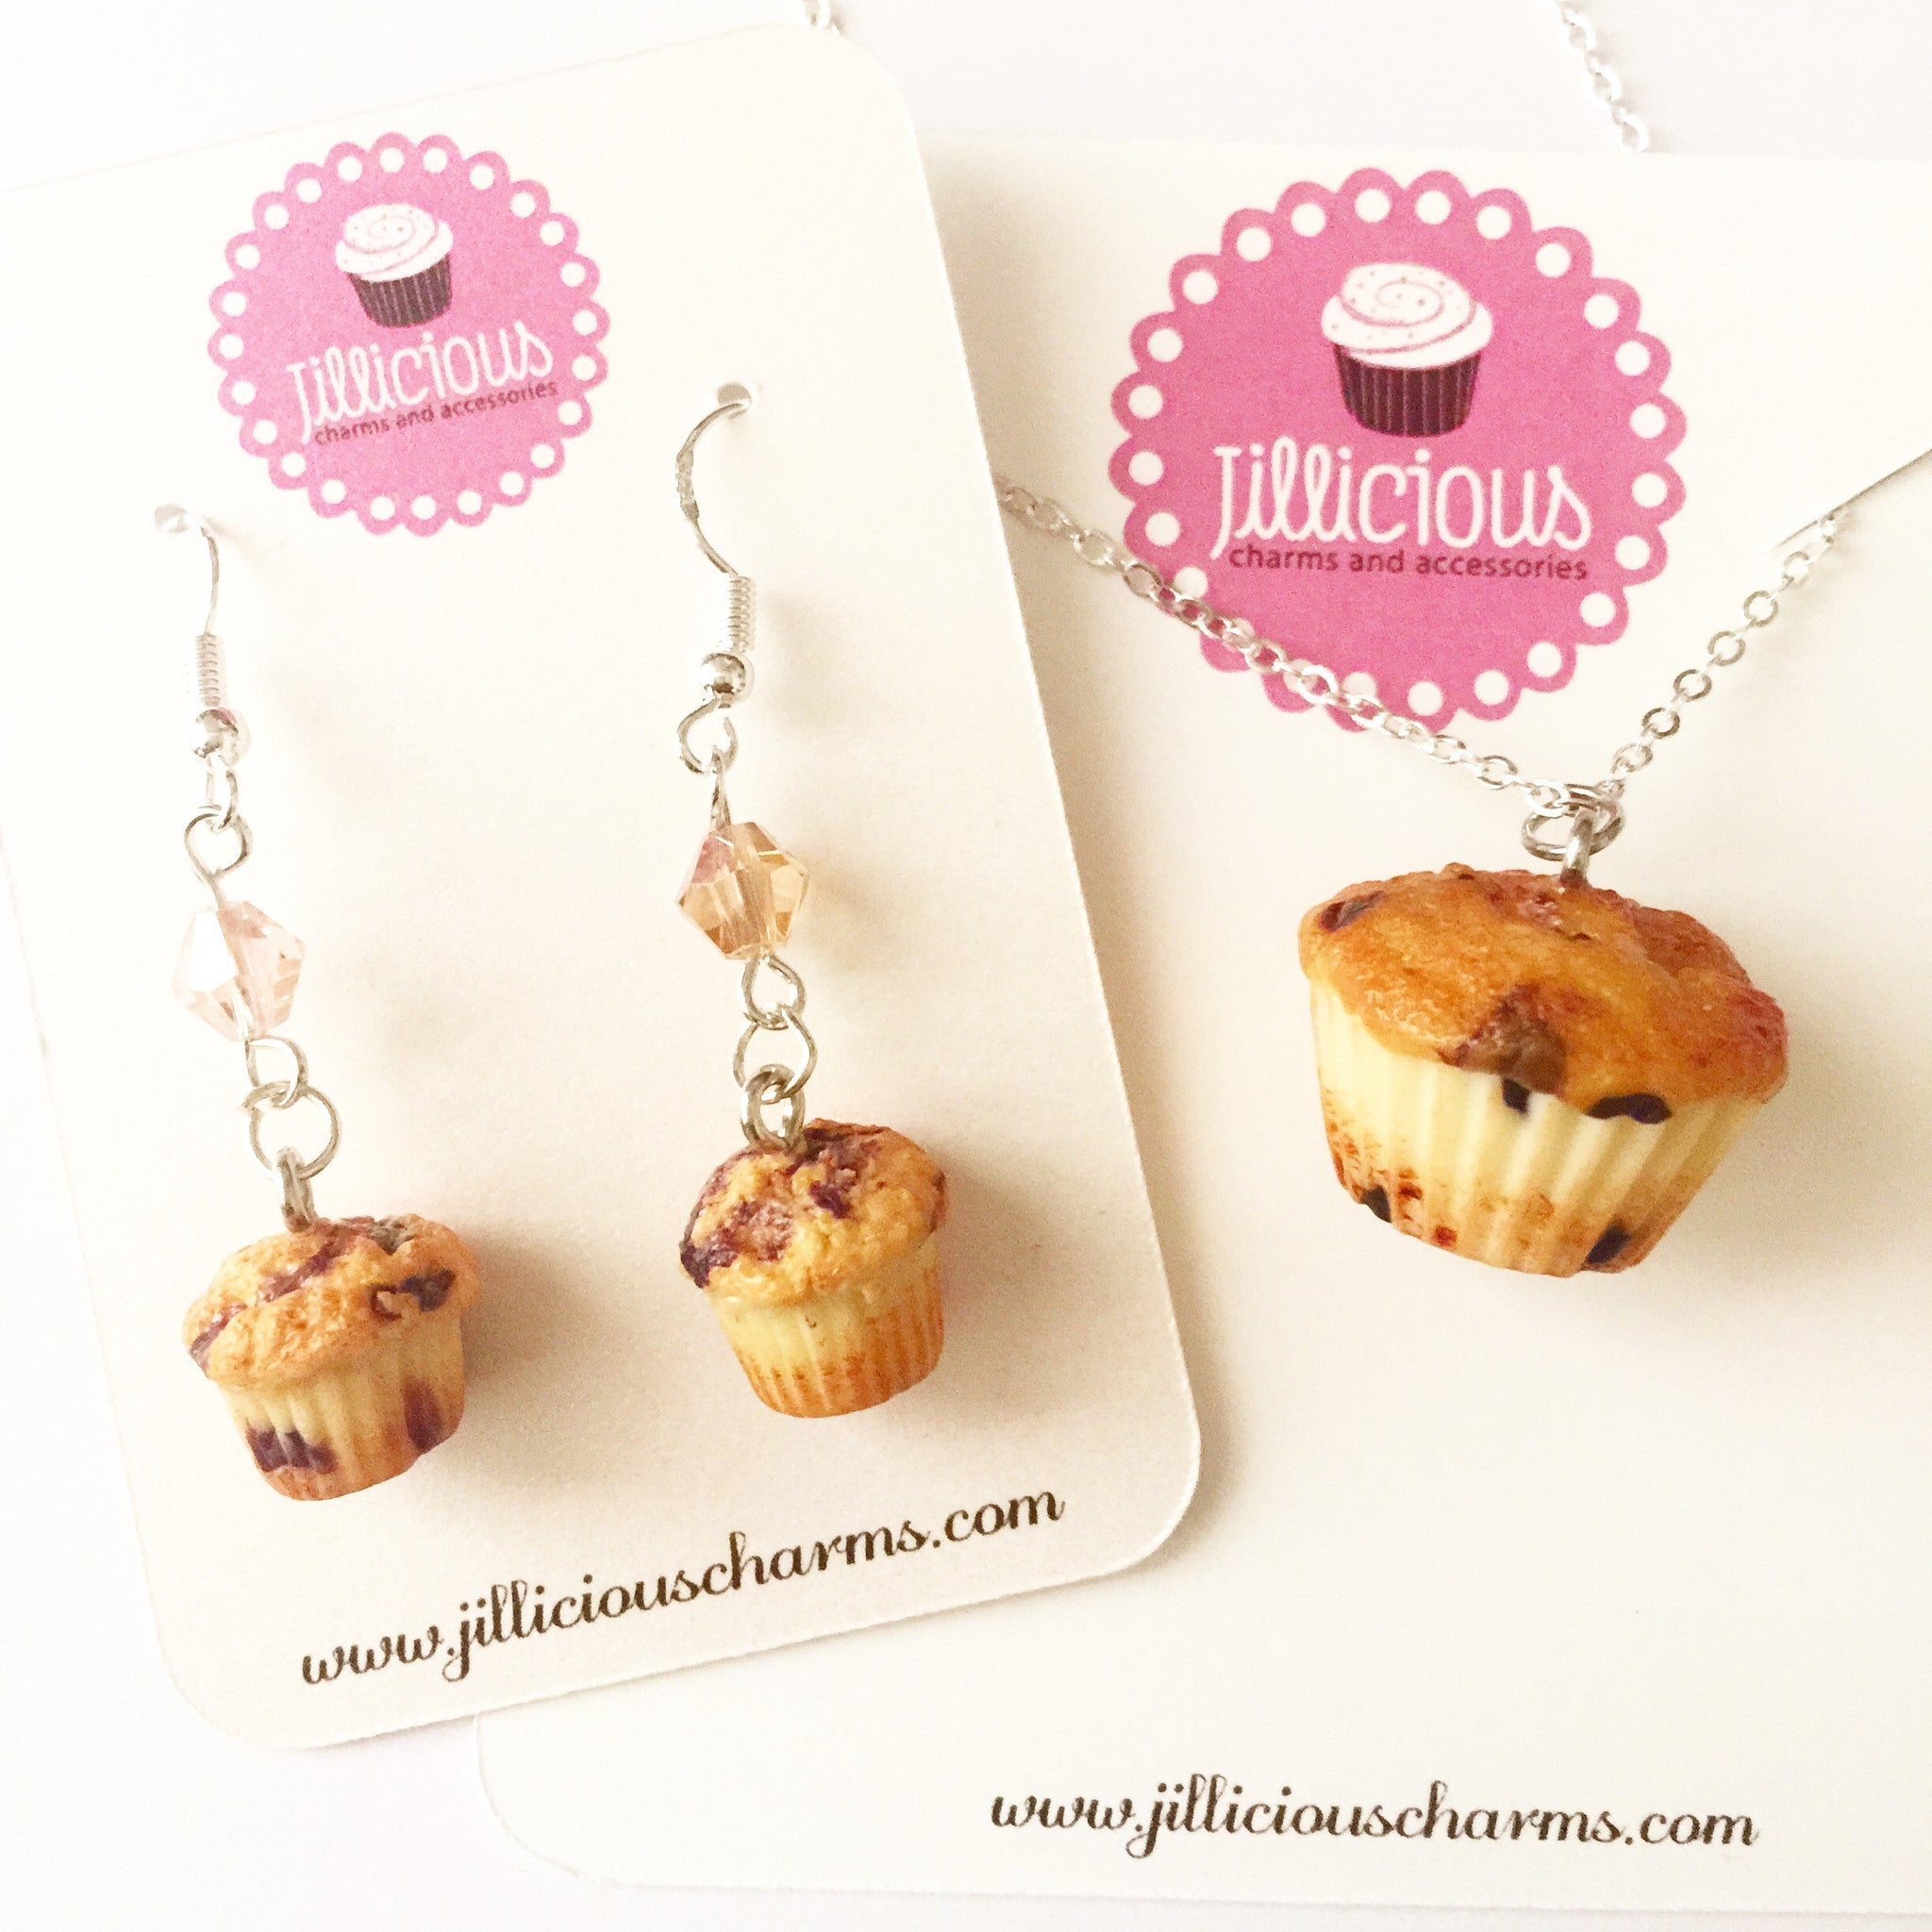 Blueberry Muffin Necklace - Jillicious charms and accessories - 6